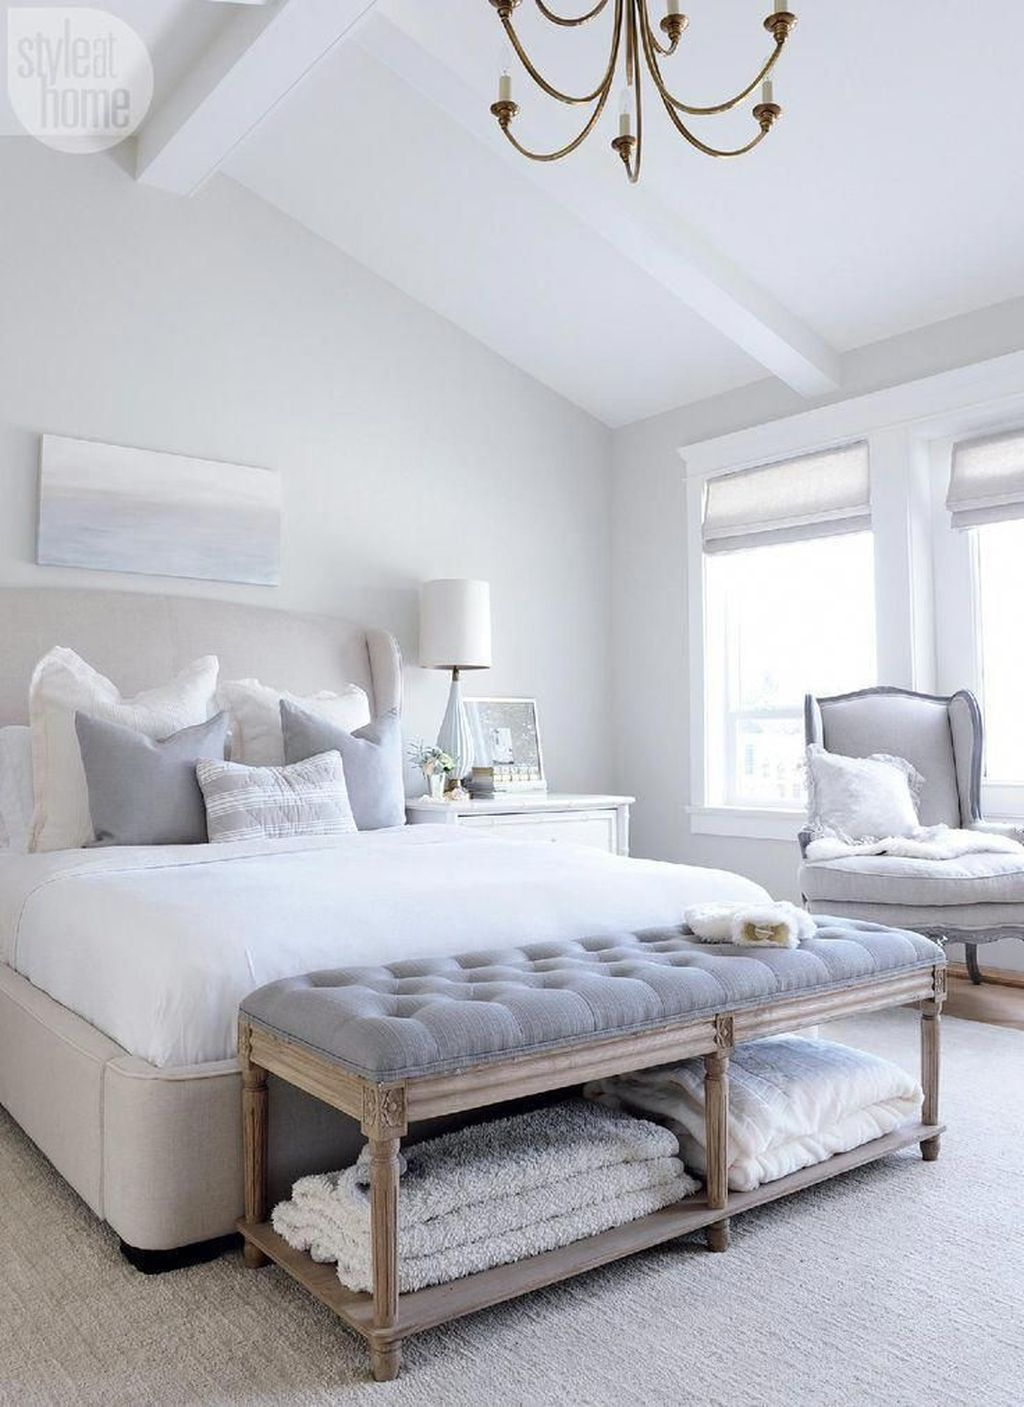 Picture of: Popular White Master Bedroom Furniture Ideas 16 Homyhomee